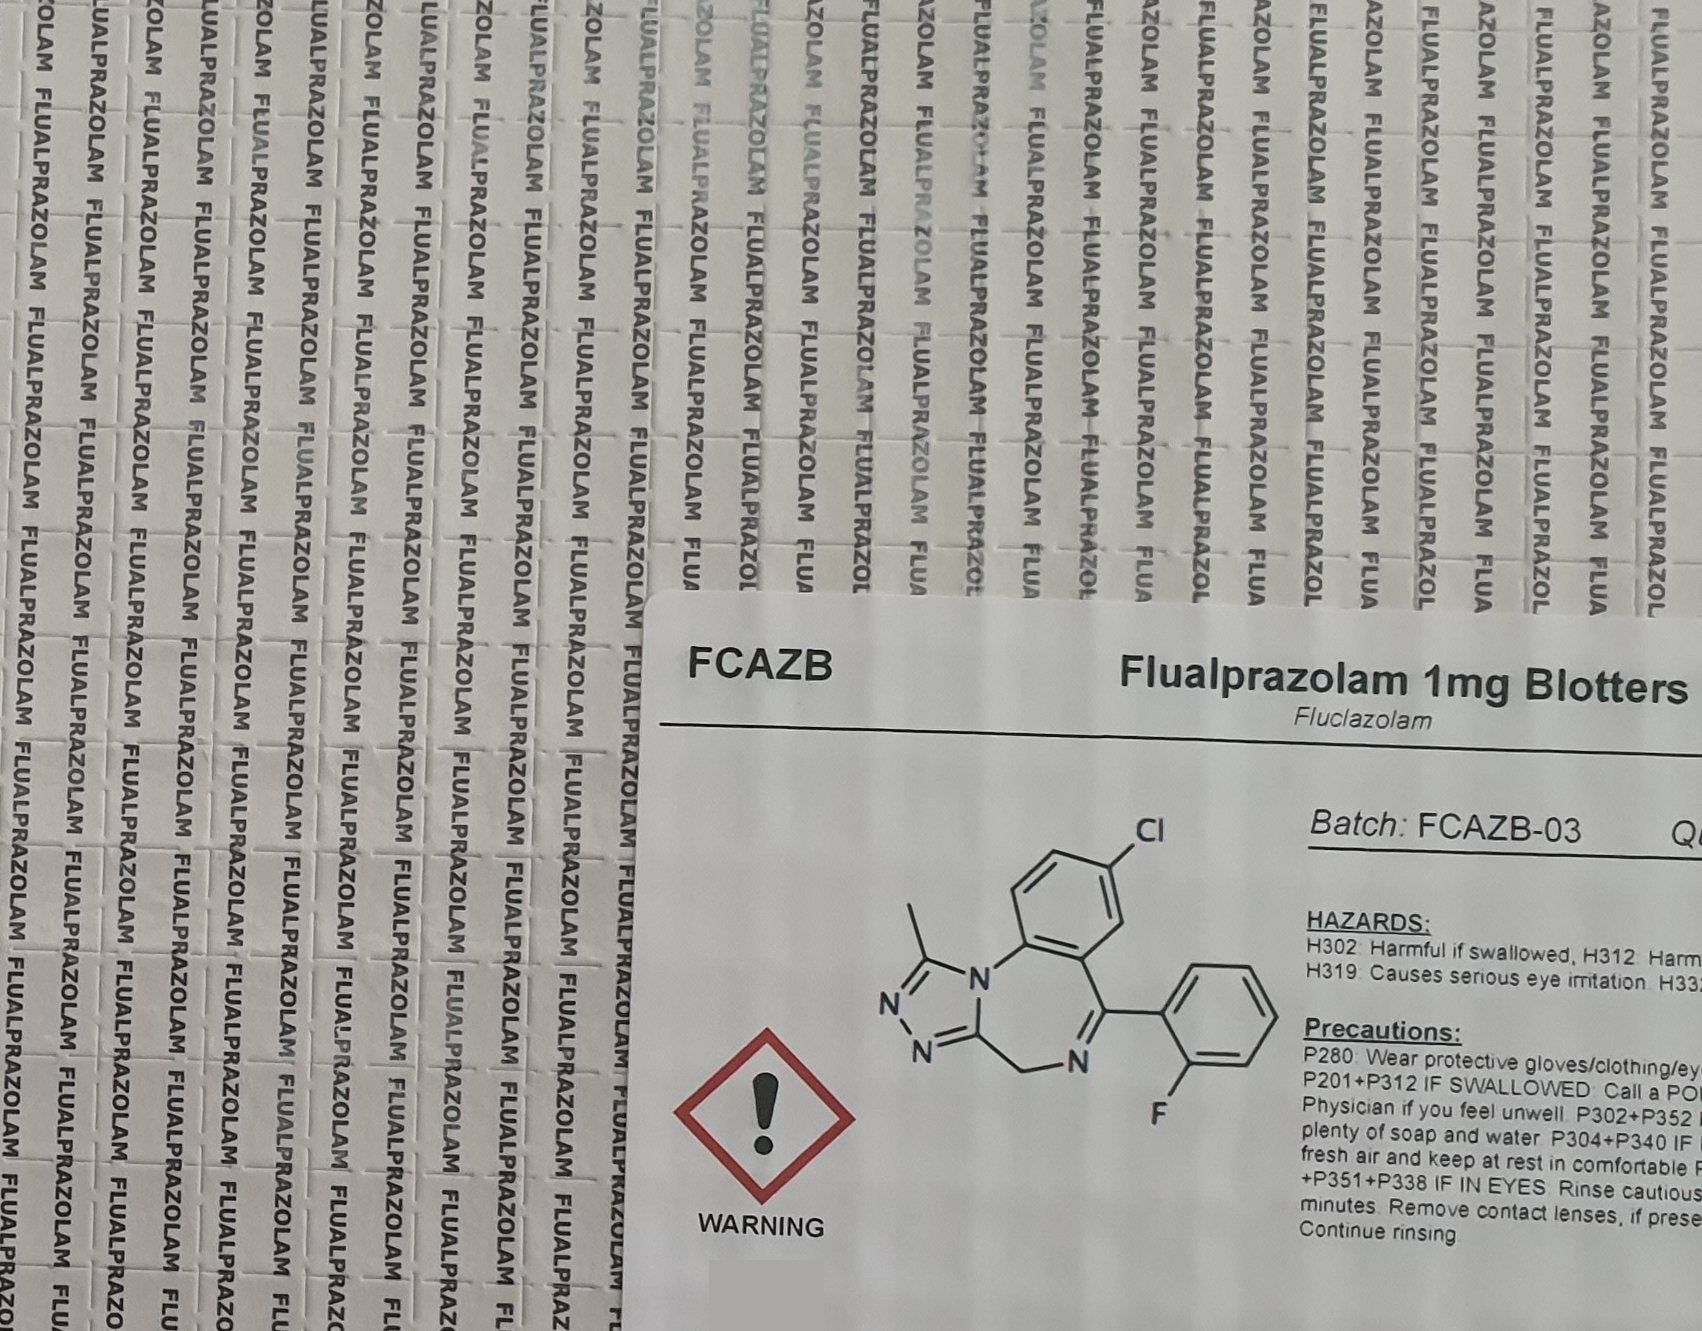 New supply of fluclazolam blotters available - Order now